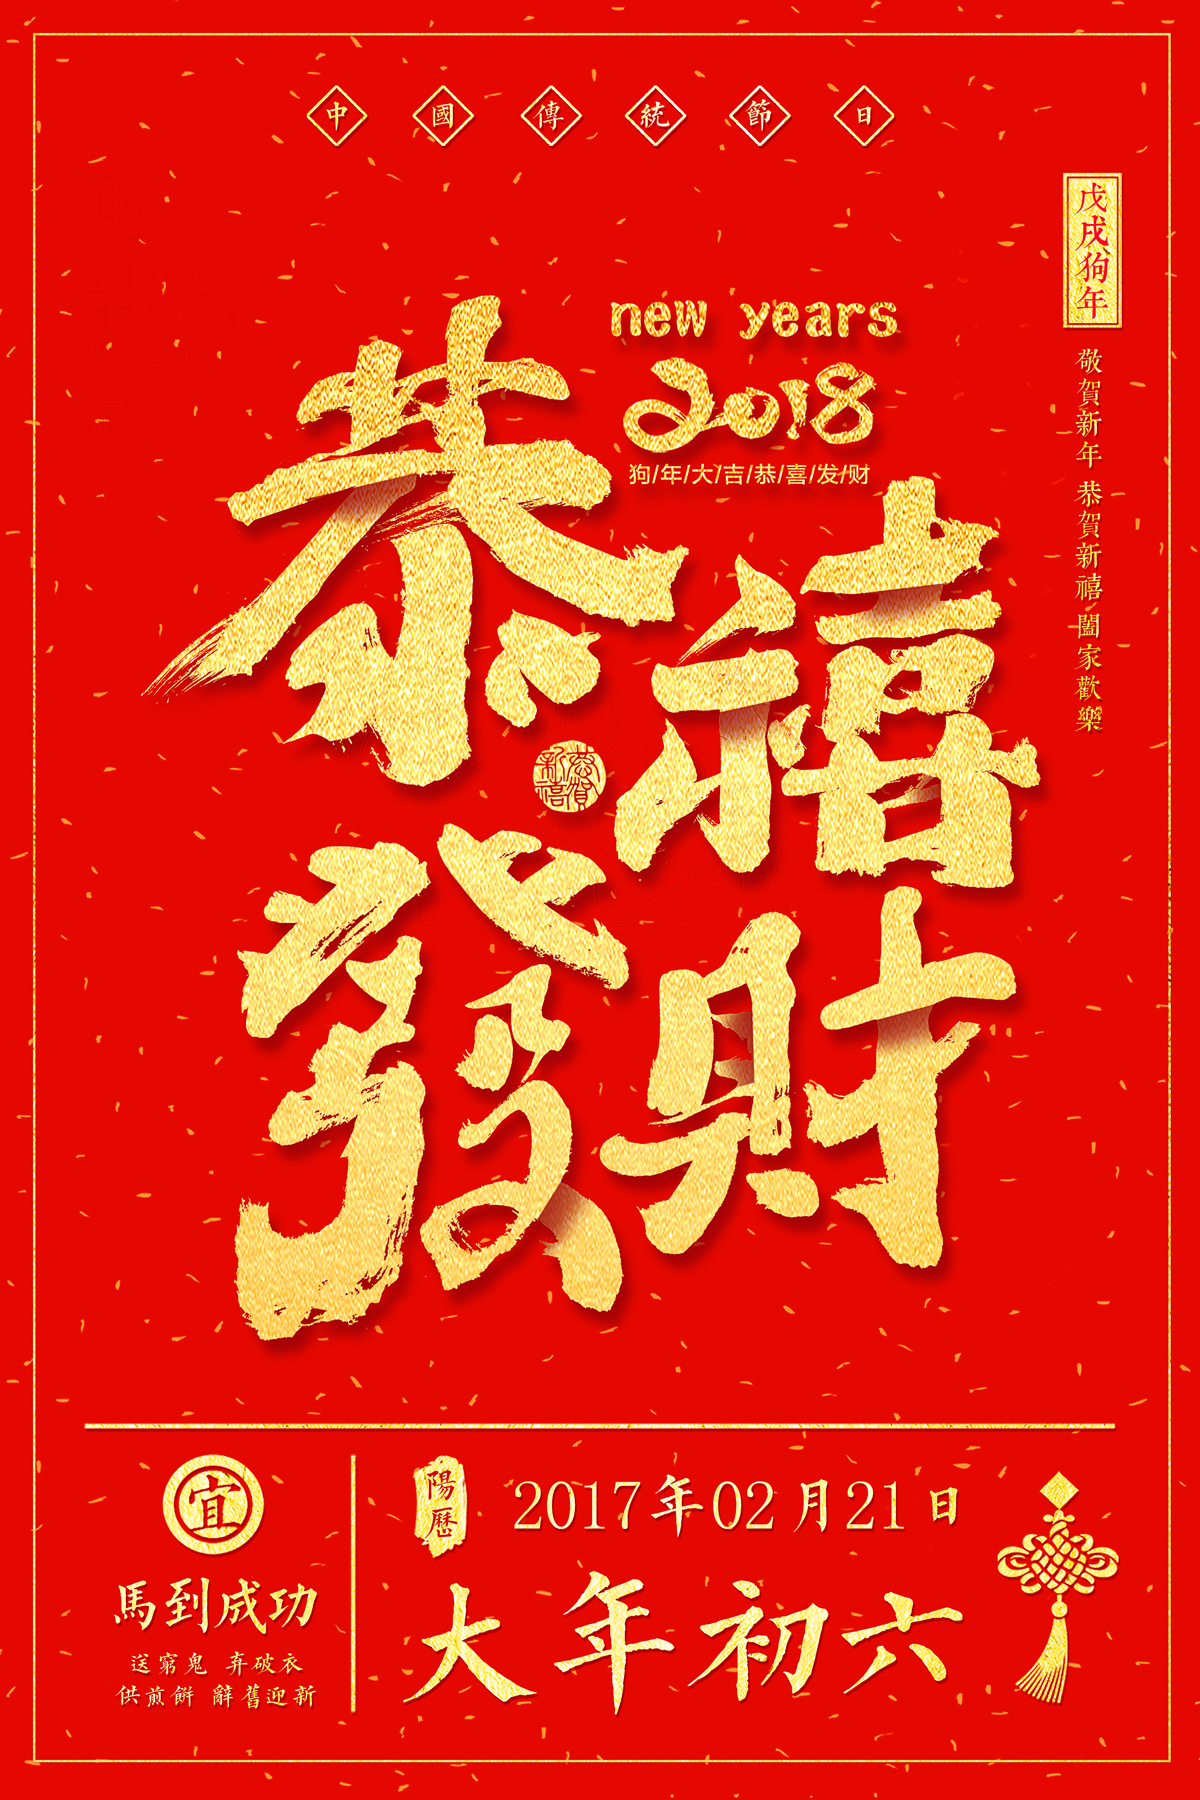 Happy new year in China congratulations on making a fortune poster design -  China PSD File Free Download